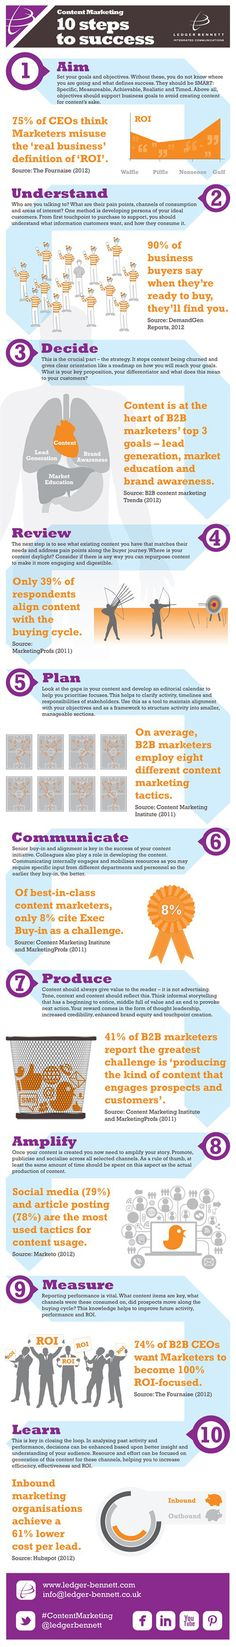 Steps To Content Marketing Campaign #Infographic #CRM